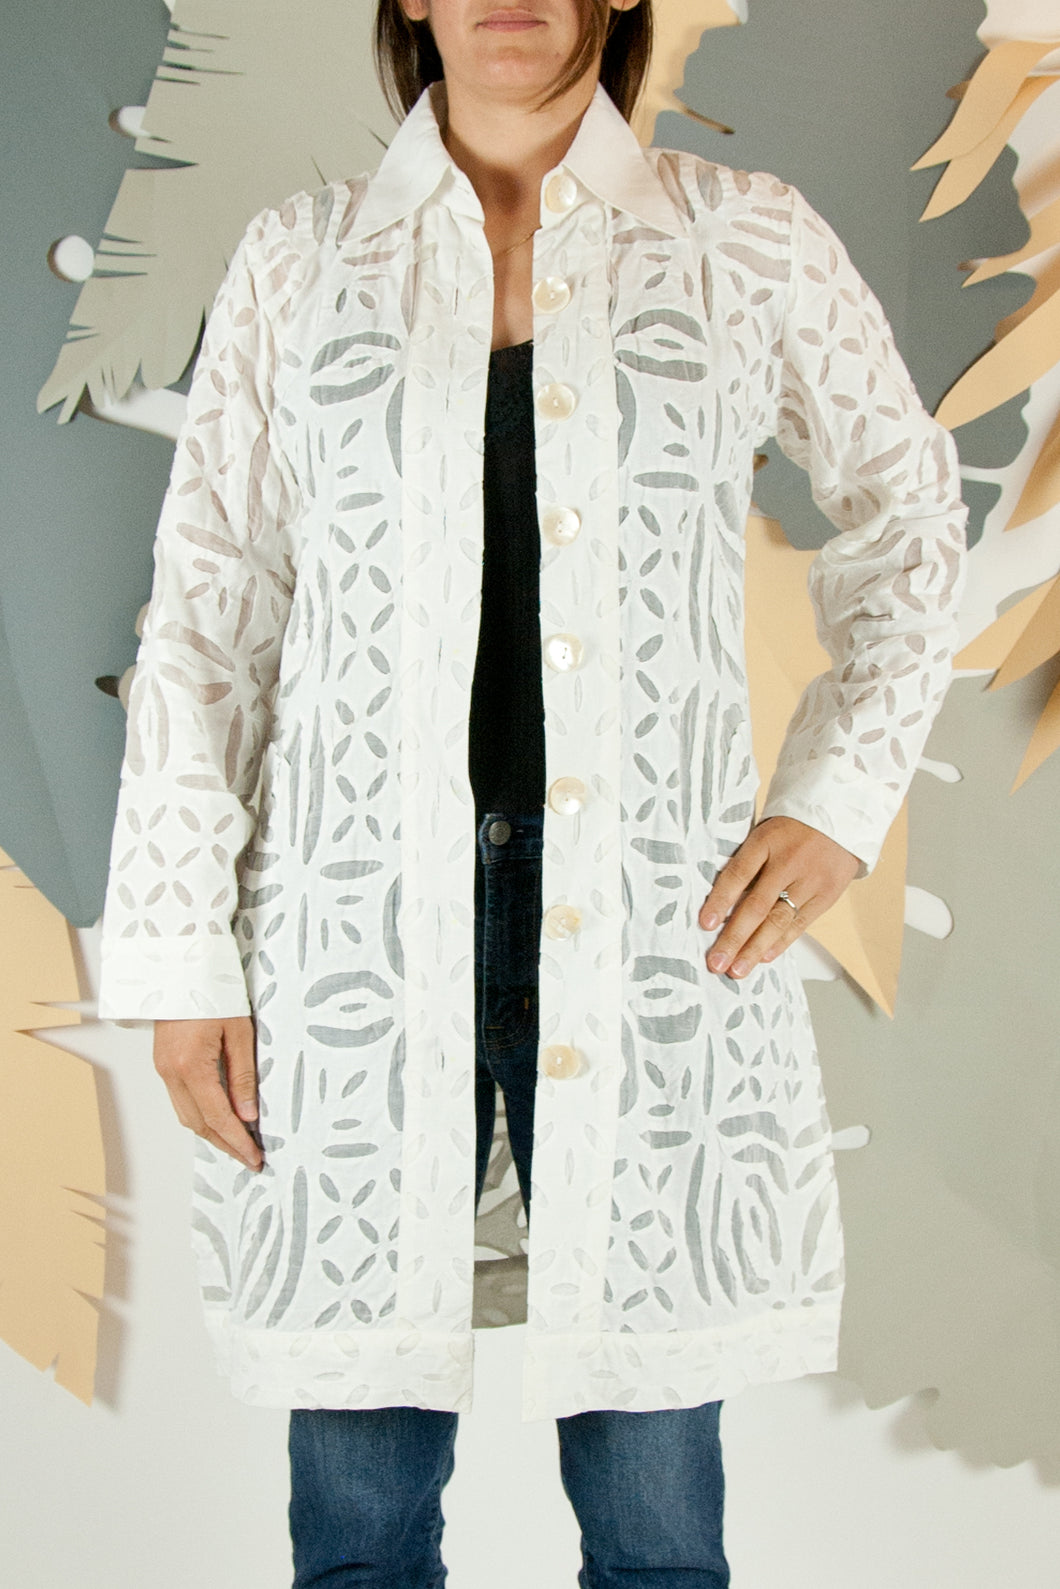 Appliqué Cloud Robe - M #02